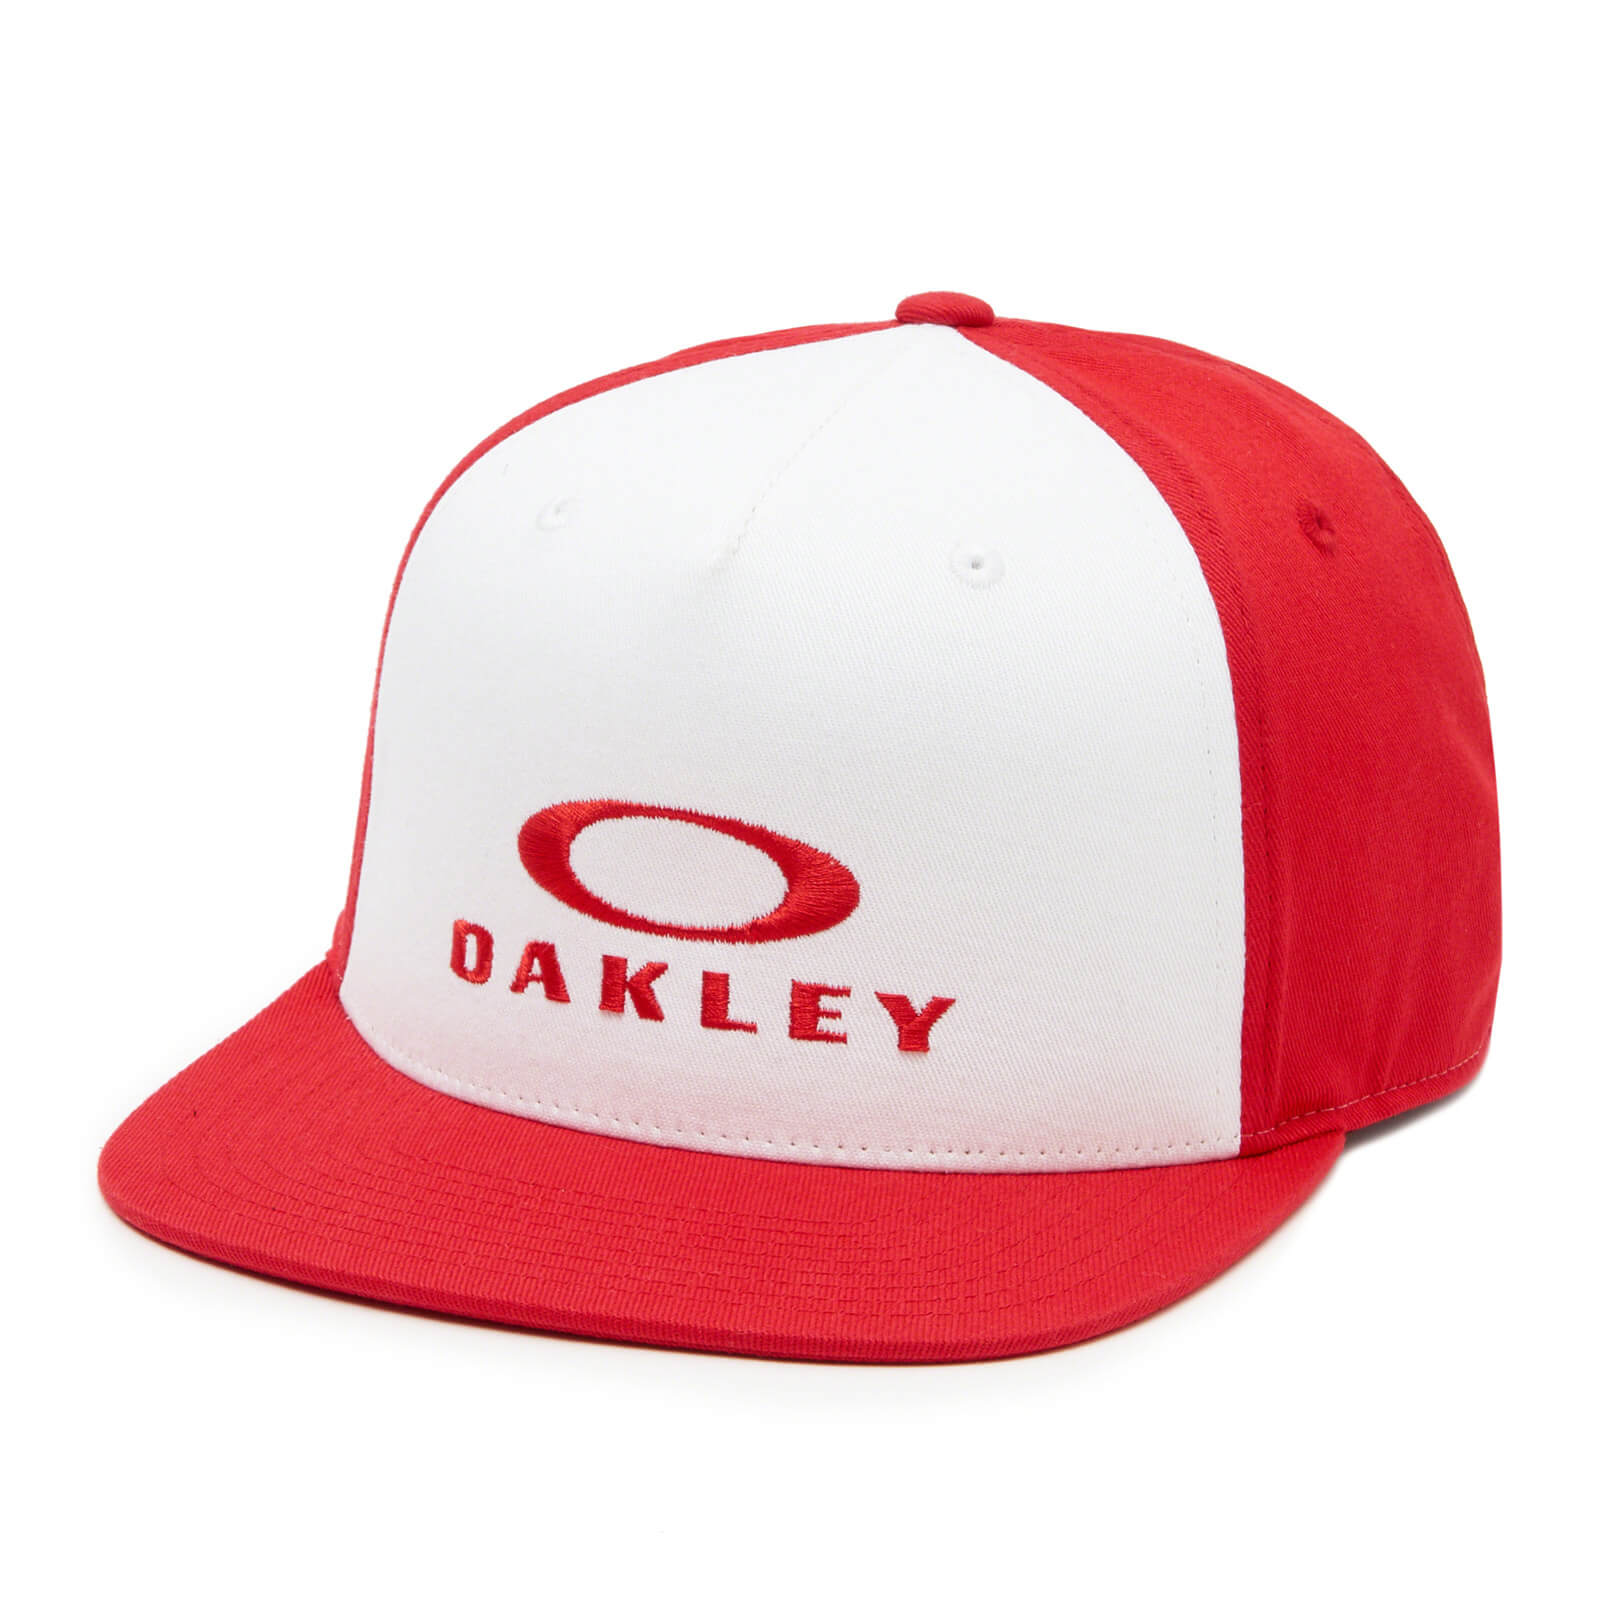 Oakley Silver 110 Flex Fit Cap - Red Line